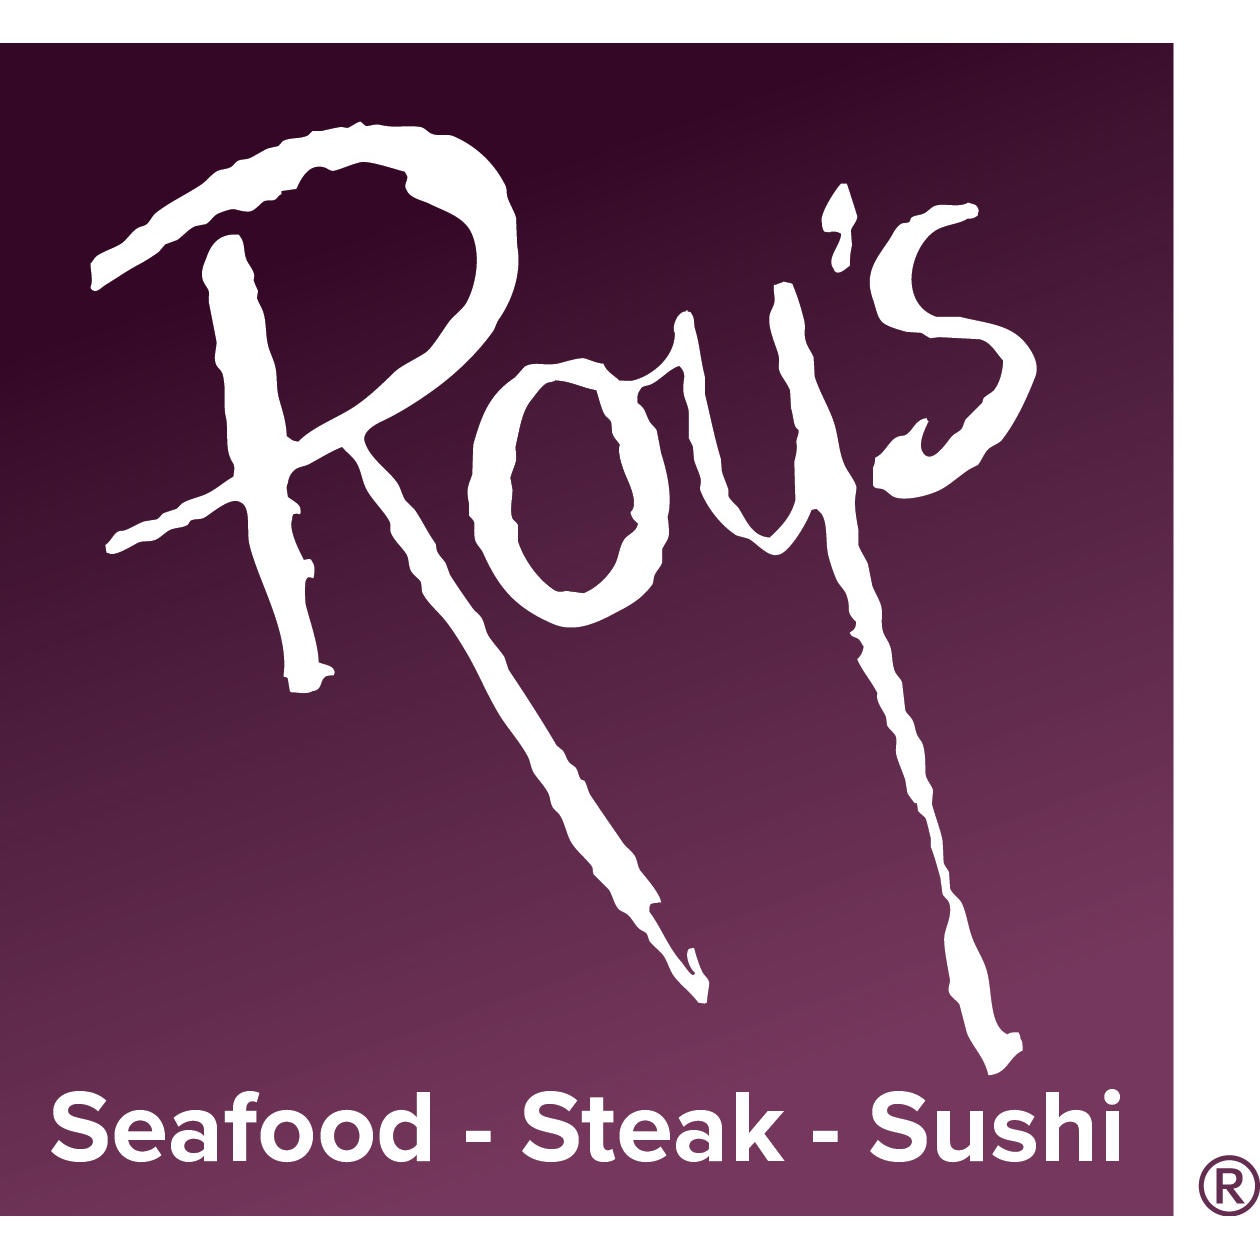 image of the Roy's Restaurant